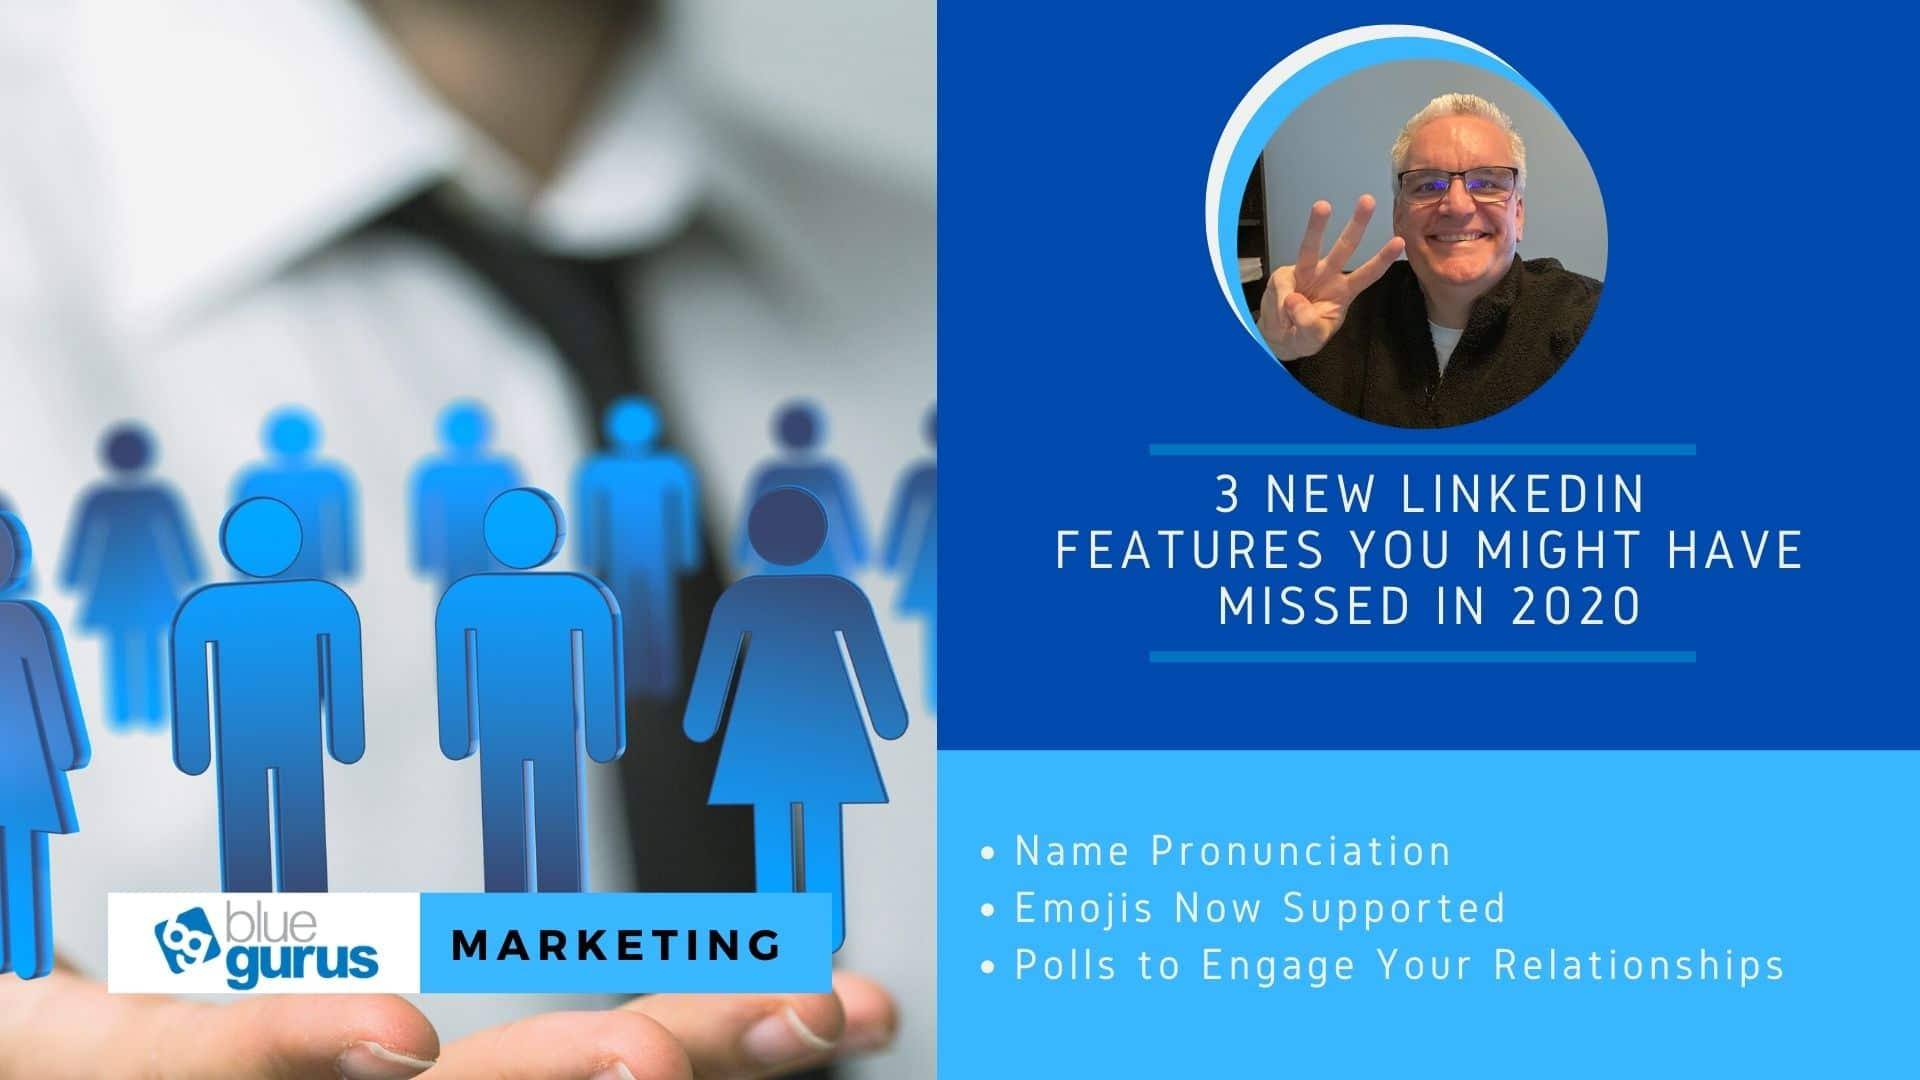 Marketing: 3 New LinkedIn Features You Might Have Missed in 2020